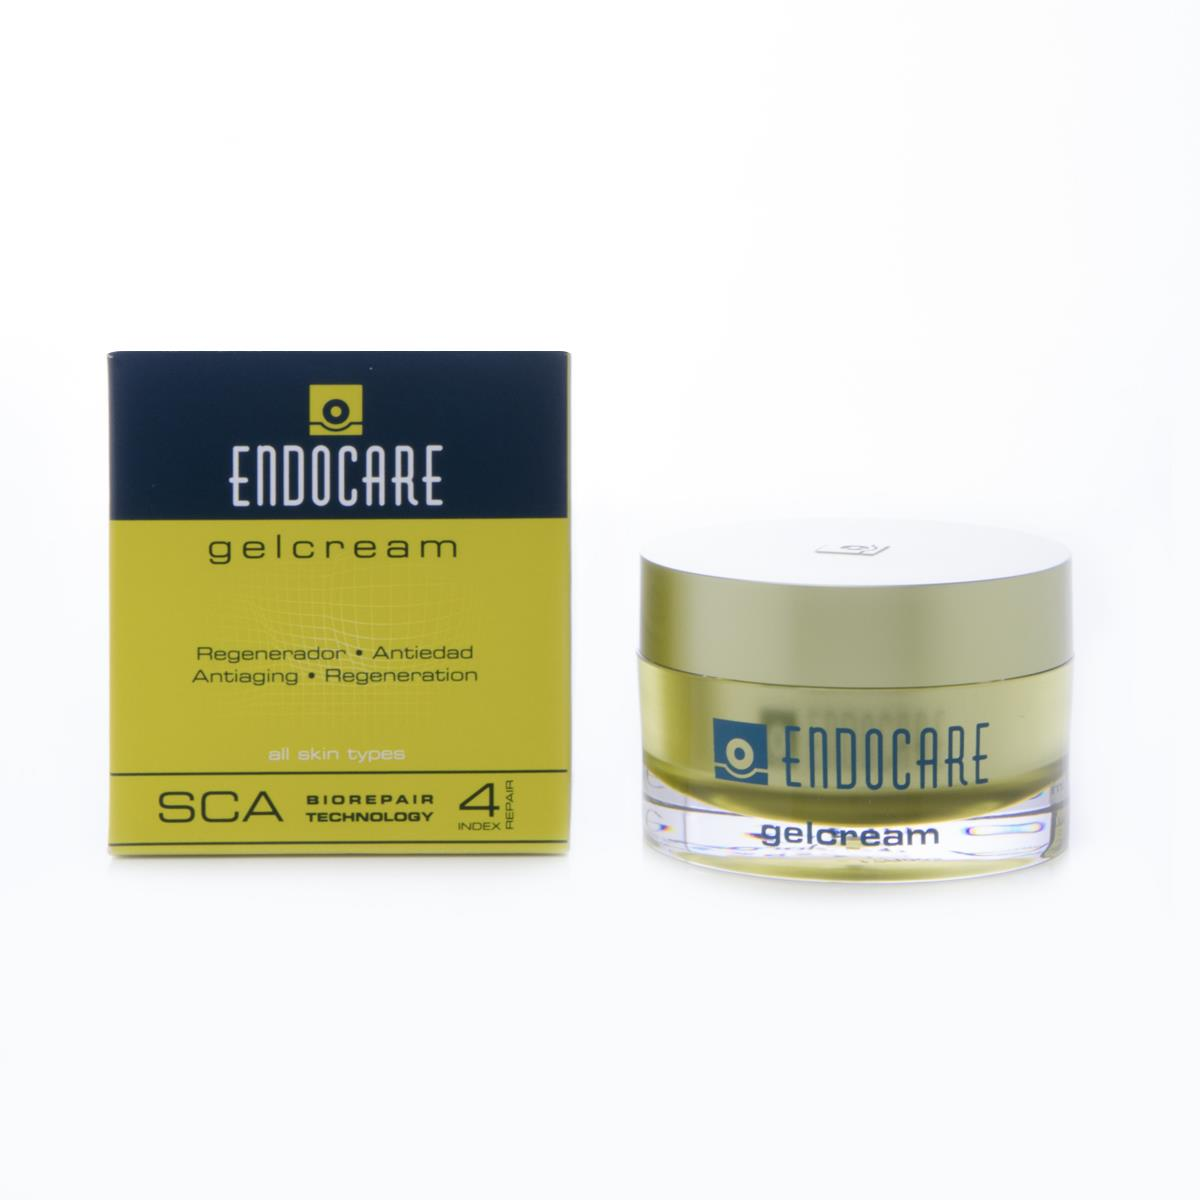 Endocare Crema 30 Ml